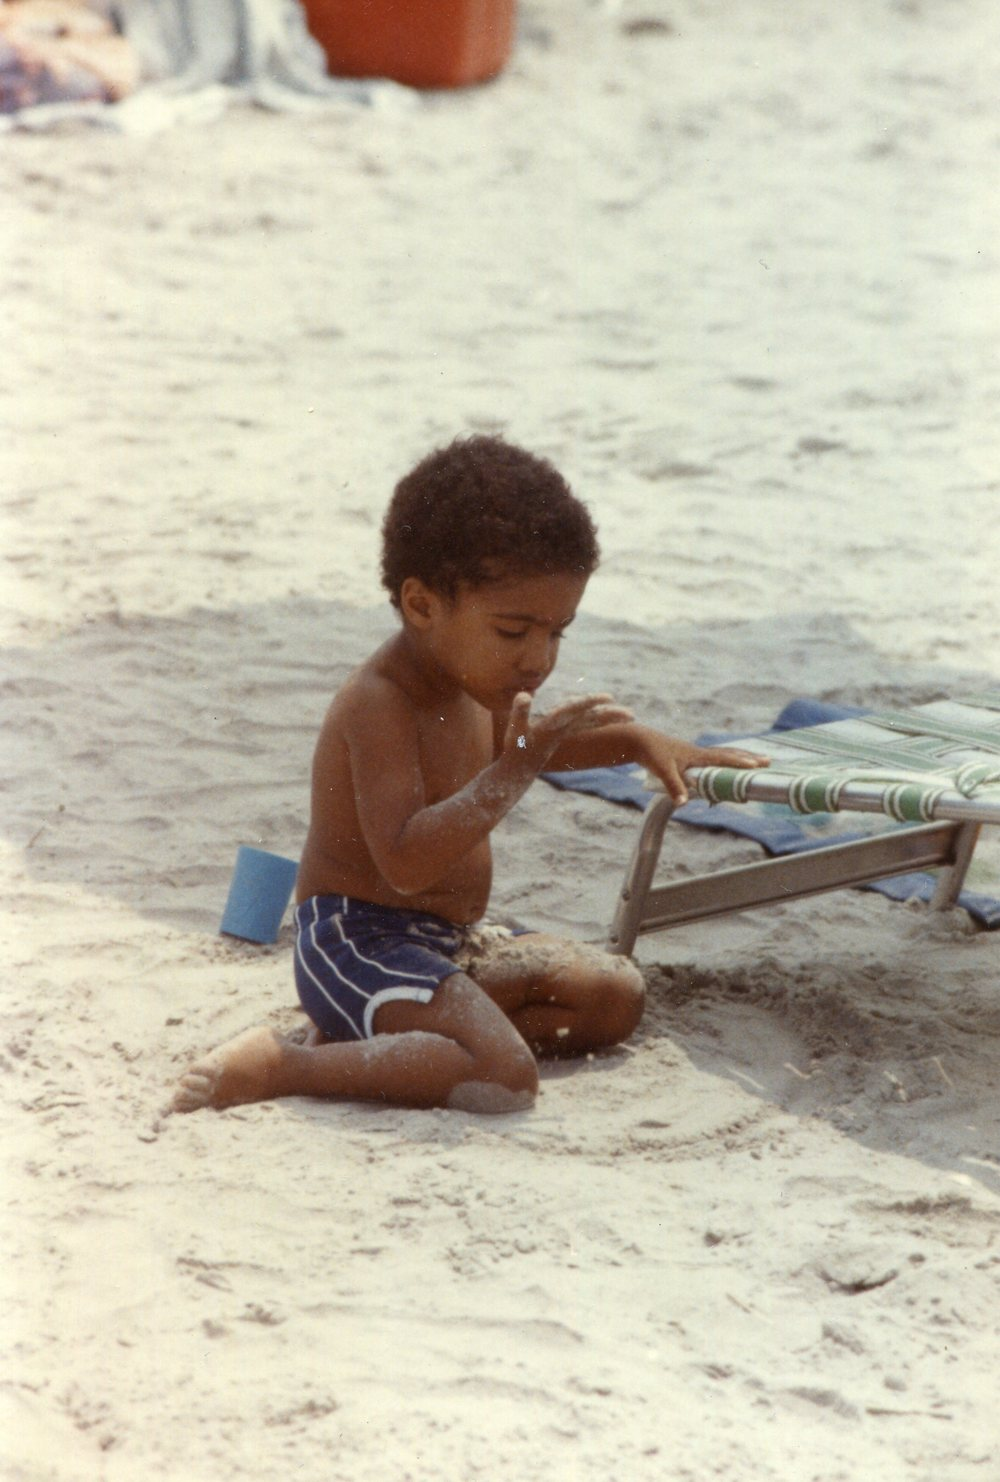 My son playing in the sand, not interested in people, 1982.